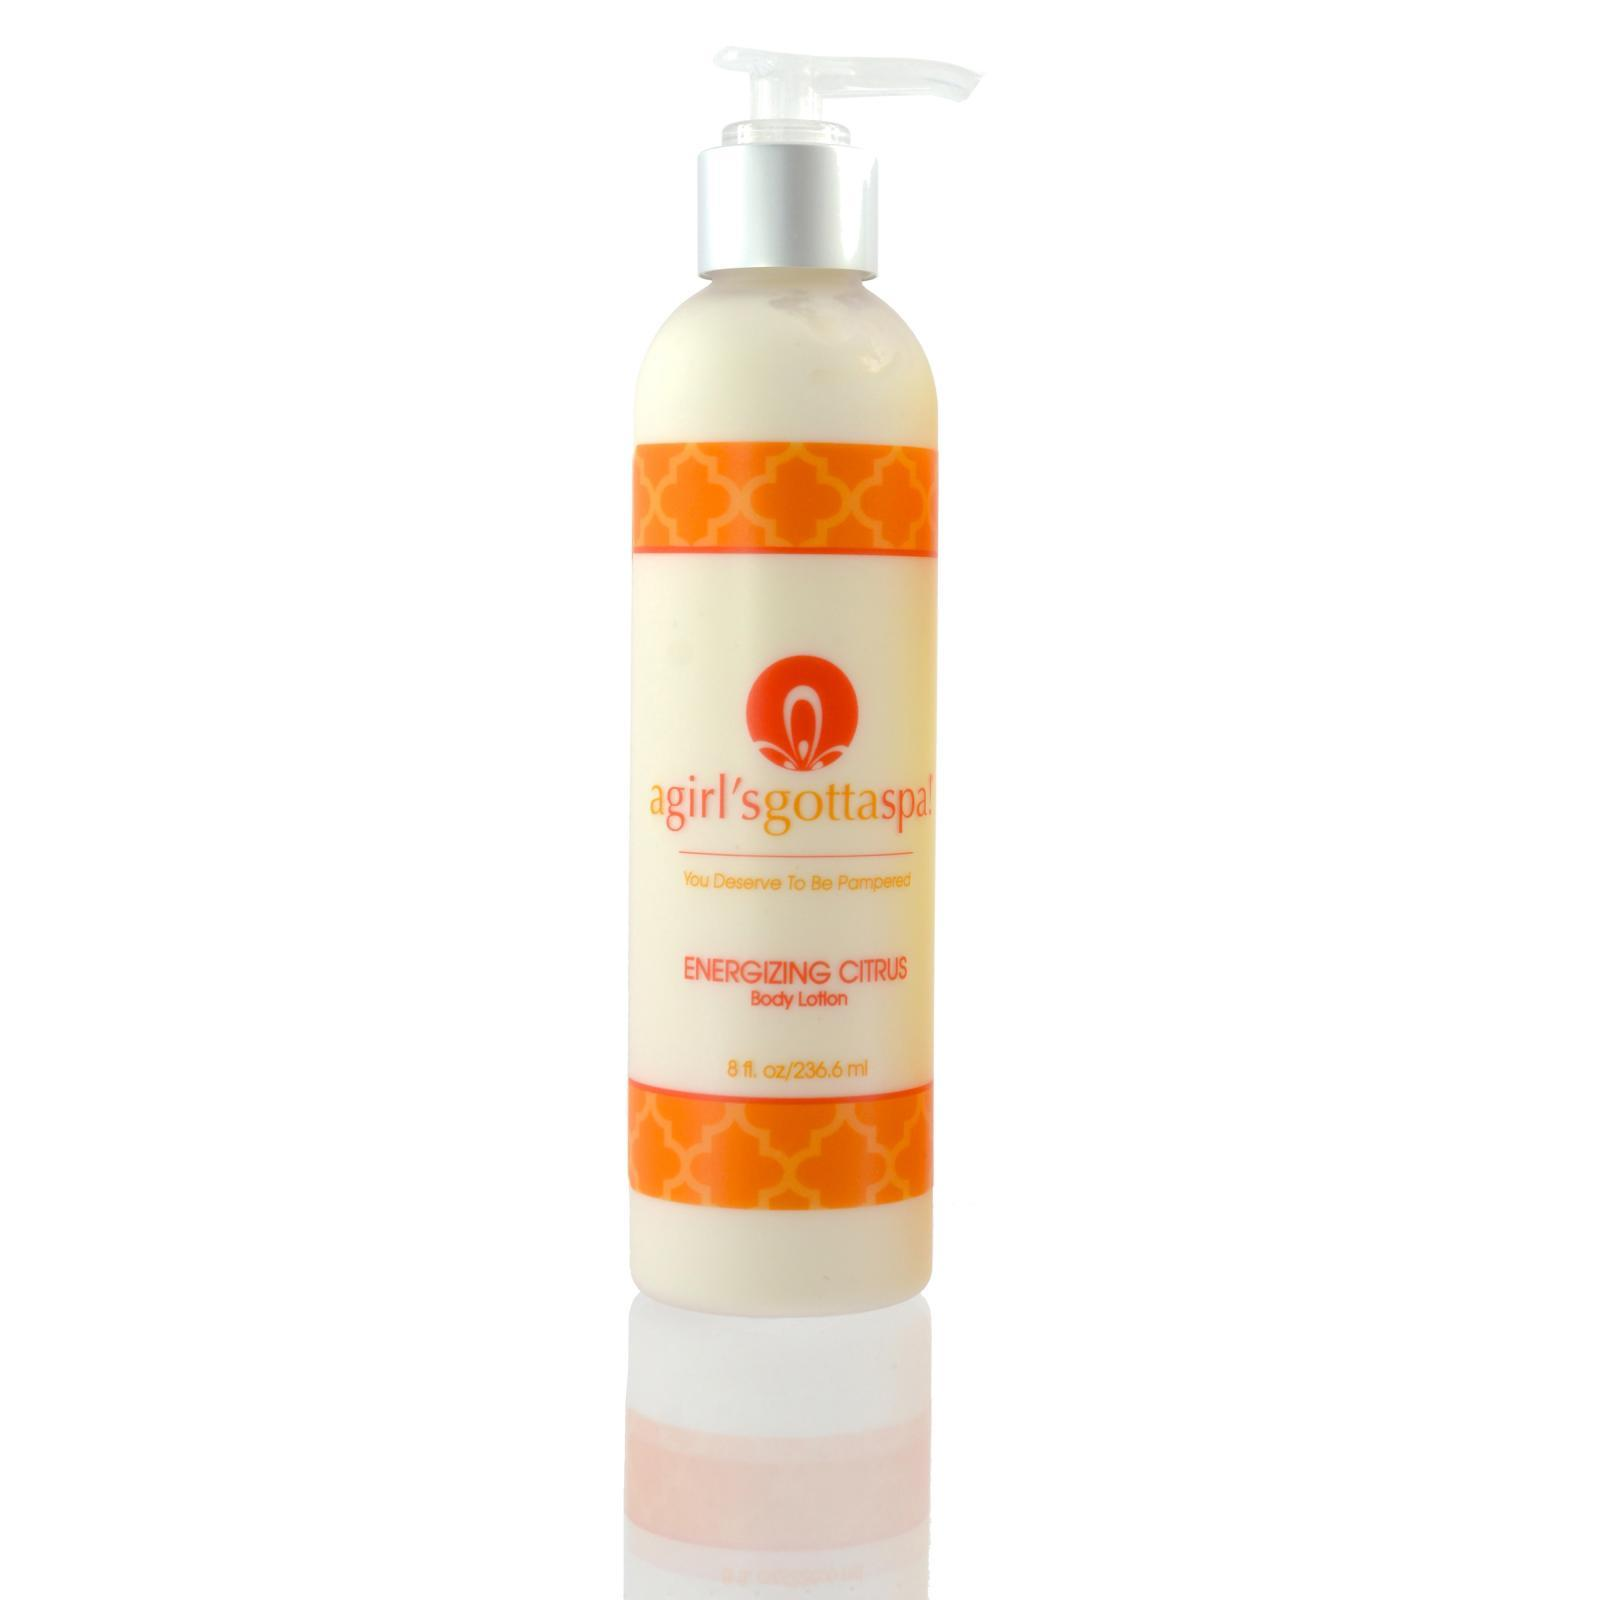 Energizing Citrus Body Lotion